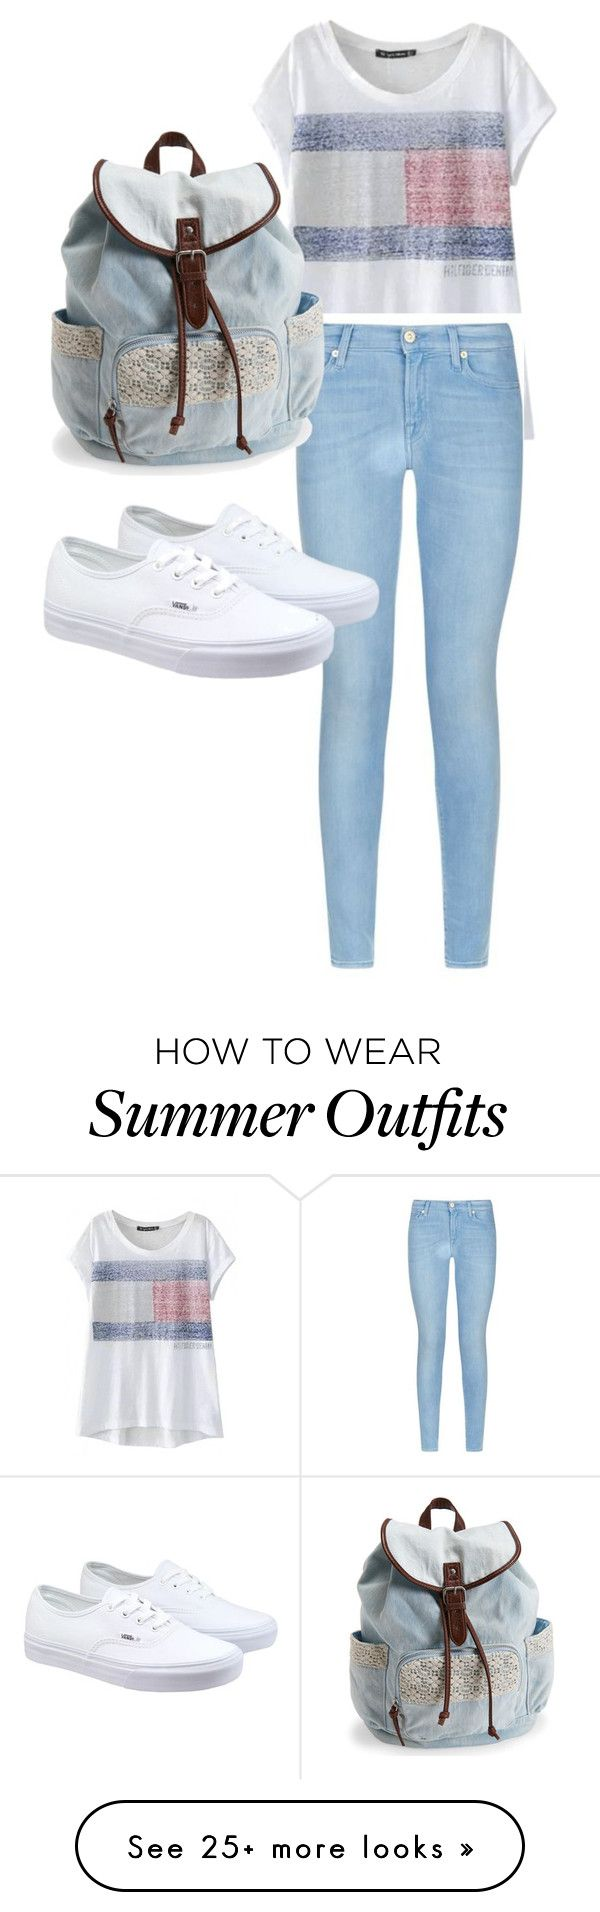 """""""Cute Summer Outfit"""" by avatrinity on Polyvore featuring 7 For All Mankind, Vans, Aéropostale, women's clothing, women's fashion, women, female, woman, misses and juniors"""